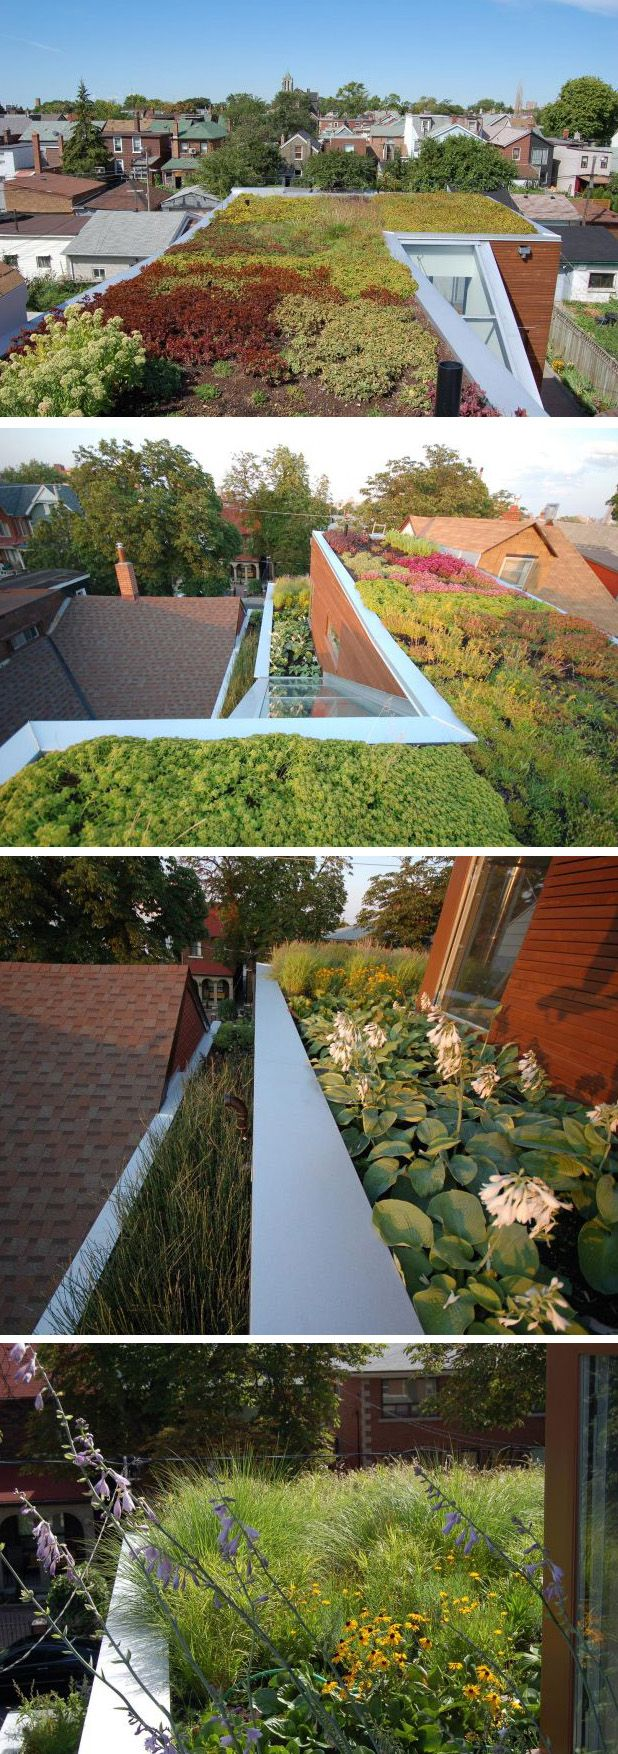 A Green Roof Was Included In The Design Of The Euclid Avenue House by Levitt Goodman Architects